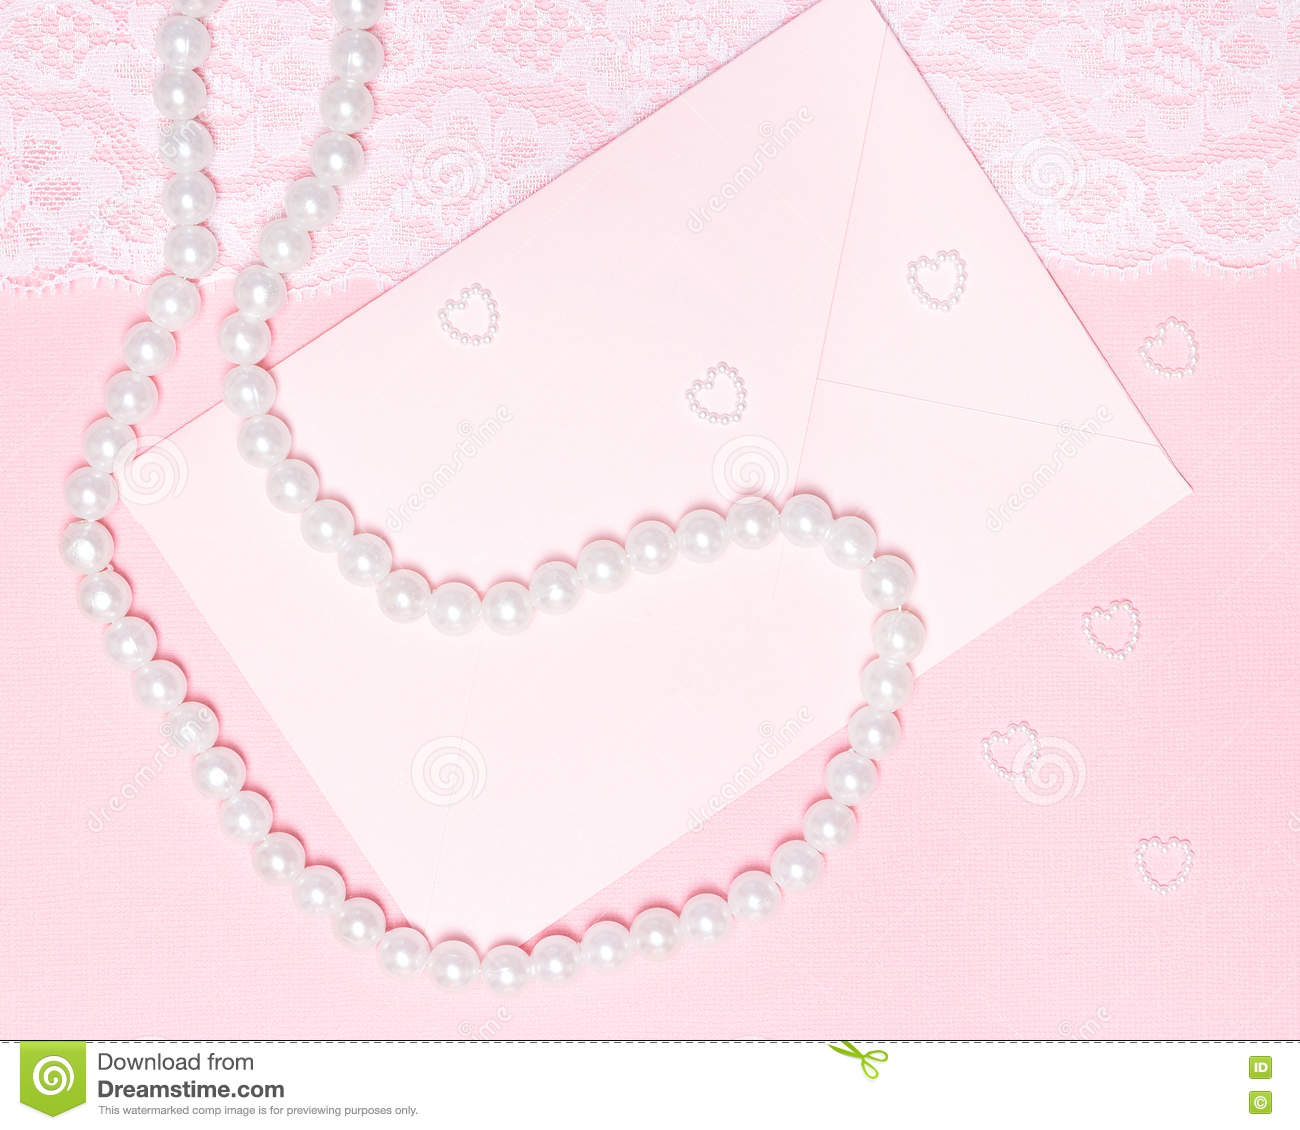 Love letter stock photo image of chaplet color felicitation download love letter stock photo image of chaplet color felicitation 81445498 altavistaventures Images